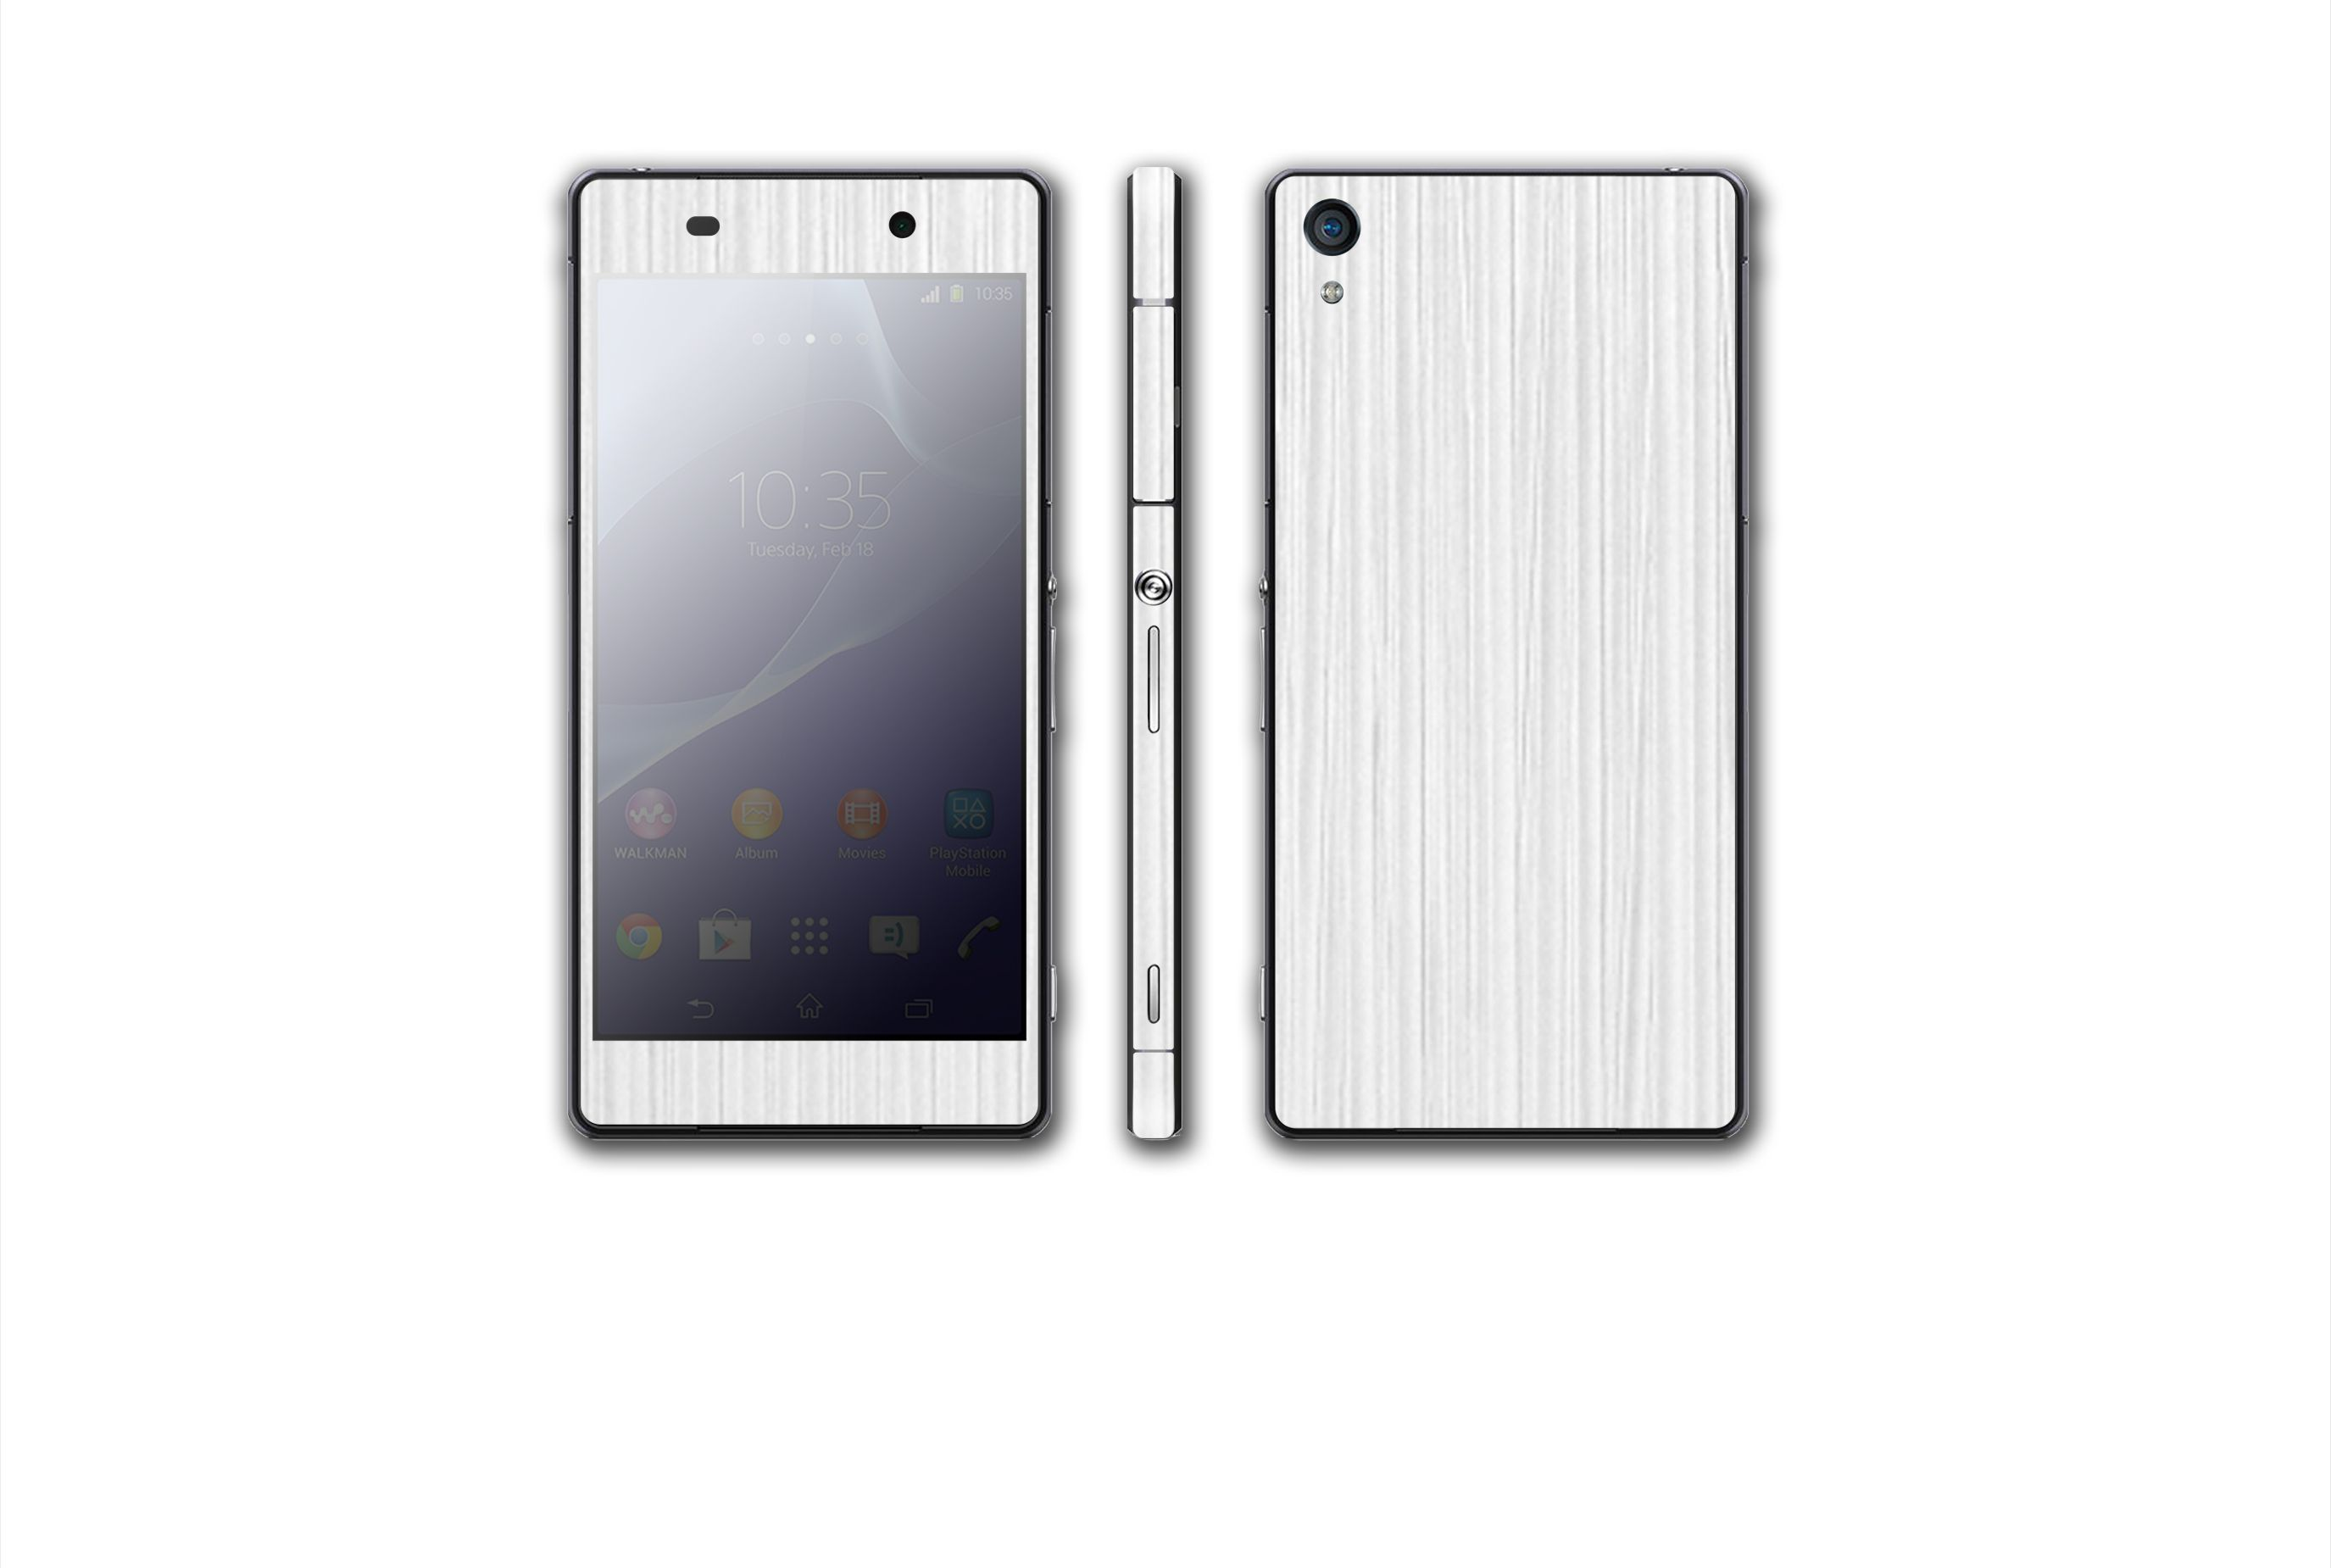 White Pearl Wood  #Sony #Xperia #Z2 #Mobile #Smart #Phone #SmartPhone #Skin #Wrap #Sticker #Stickers #Decals #Stickerboy #Shield #Protector #Wood #Ebony #Mahogany #Persimmon #Kyrobe #Vinyl #Electronics #Technology #3M